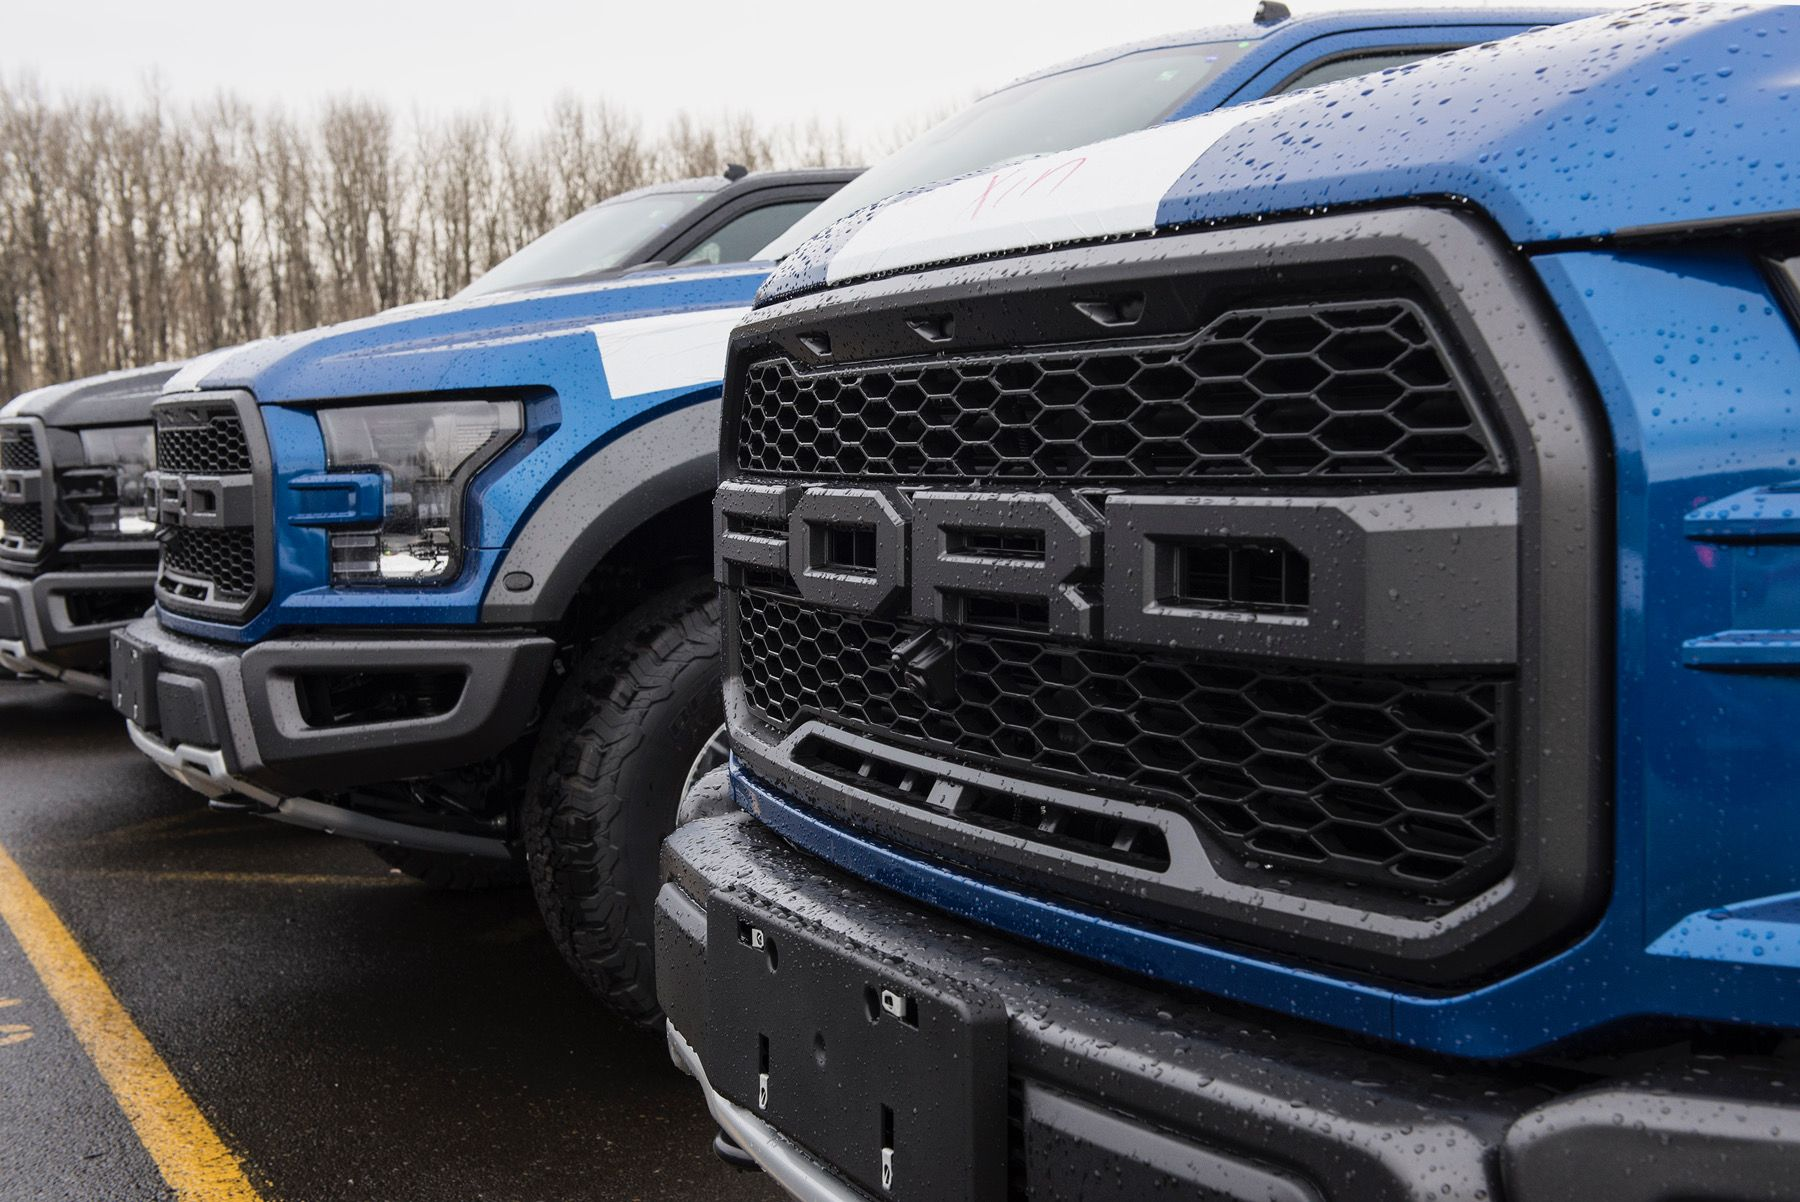 The all new 2017 ford raptor supercrew is china bound ford announced its first ever official export program for the ford f series and to china